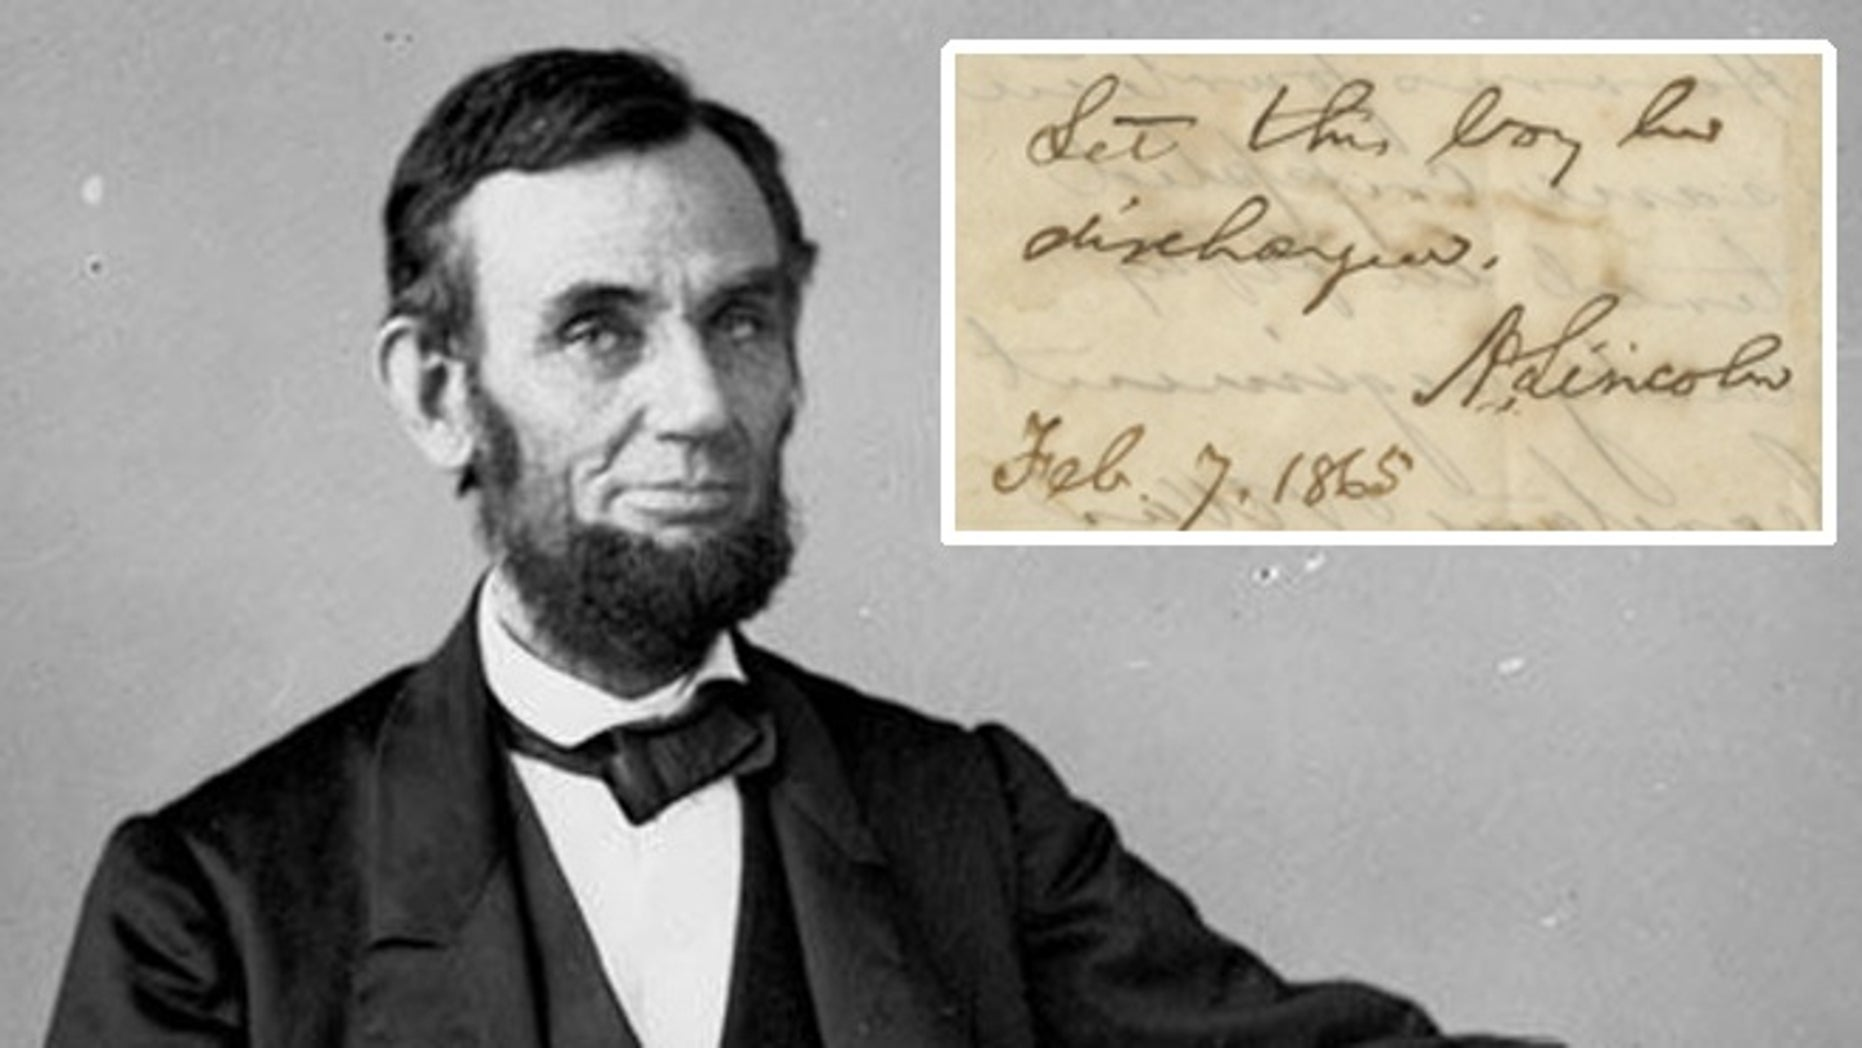 The recently found telegram from 1865 was signed by Lincoln who urged Union Army officials to allow Perry Harris to be discharged from service after an impassioned plea from his father.